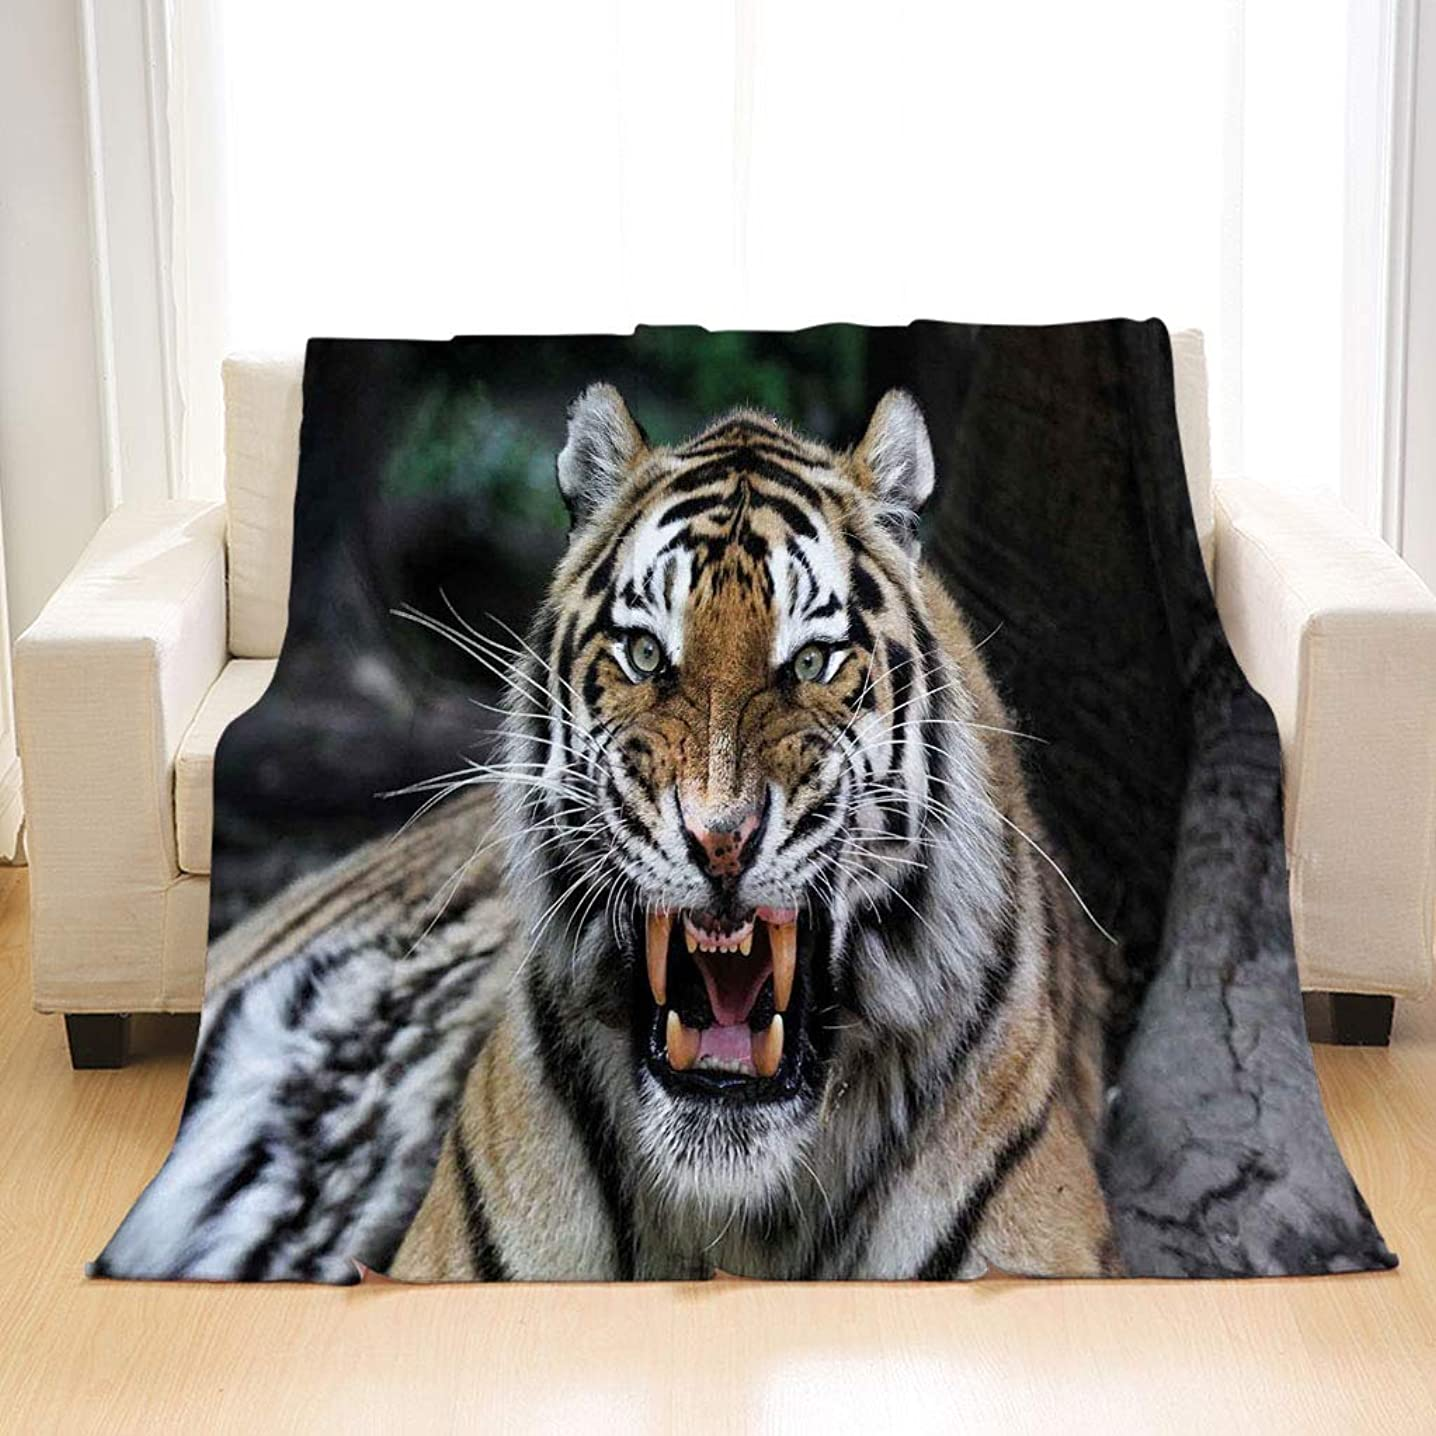 BEIVIVI Creative Design Flannel Soft Throw Blanket African Tiger Face with Roaring Wildlife Safari Savannah Animal Nature Zoo Photo Print Multicolor All Season Blanket for Bed Or Sofa, Easy Care